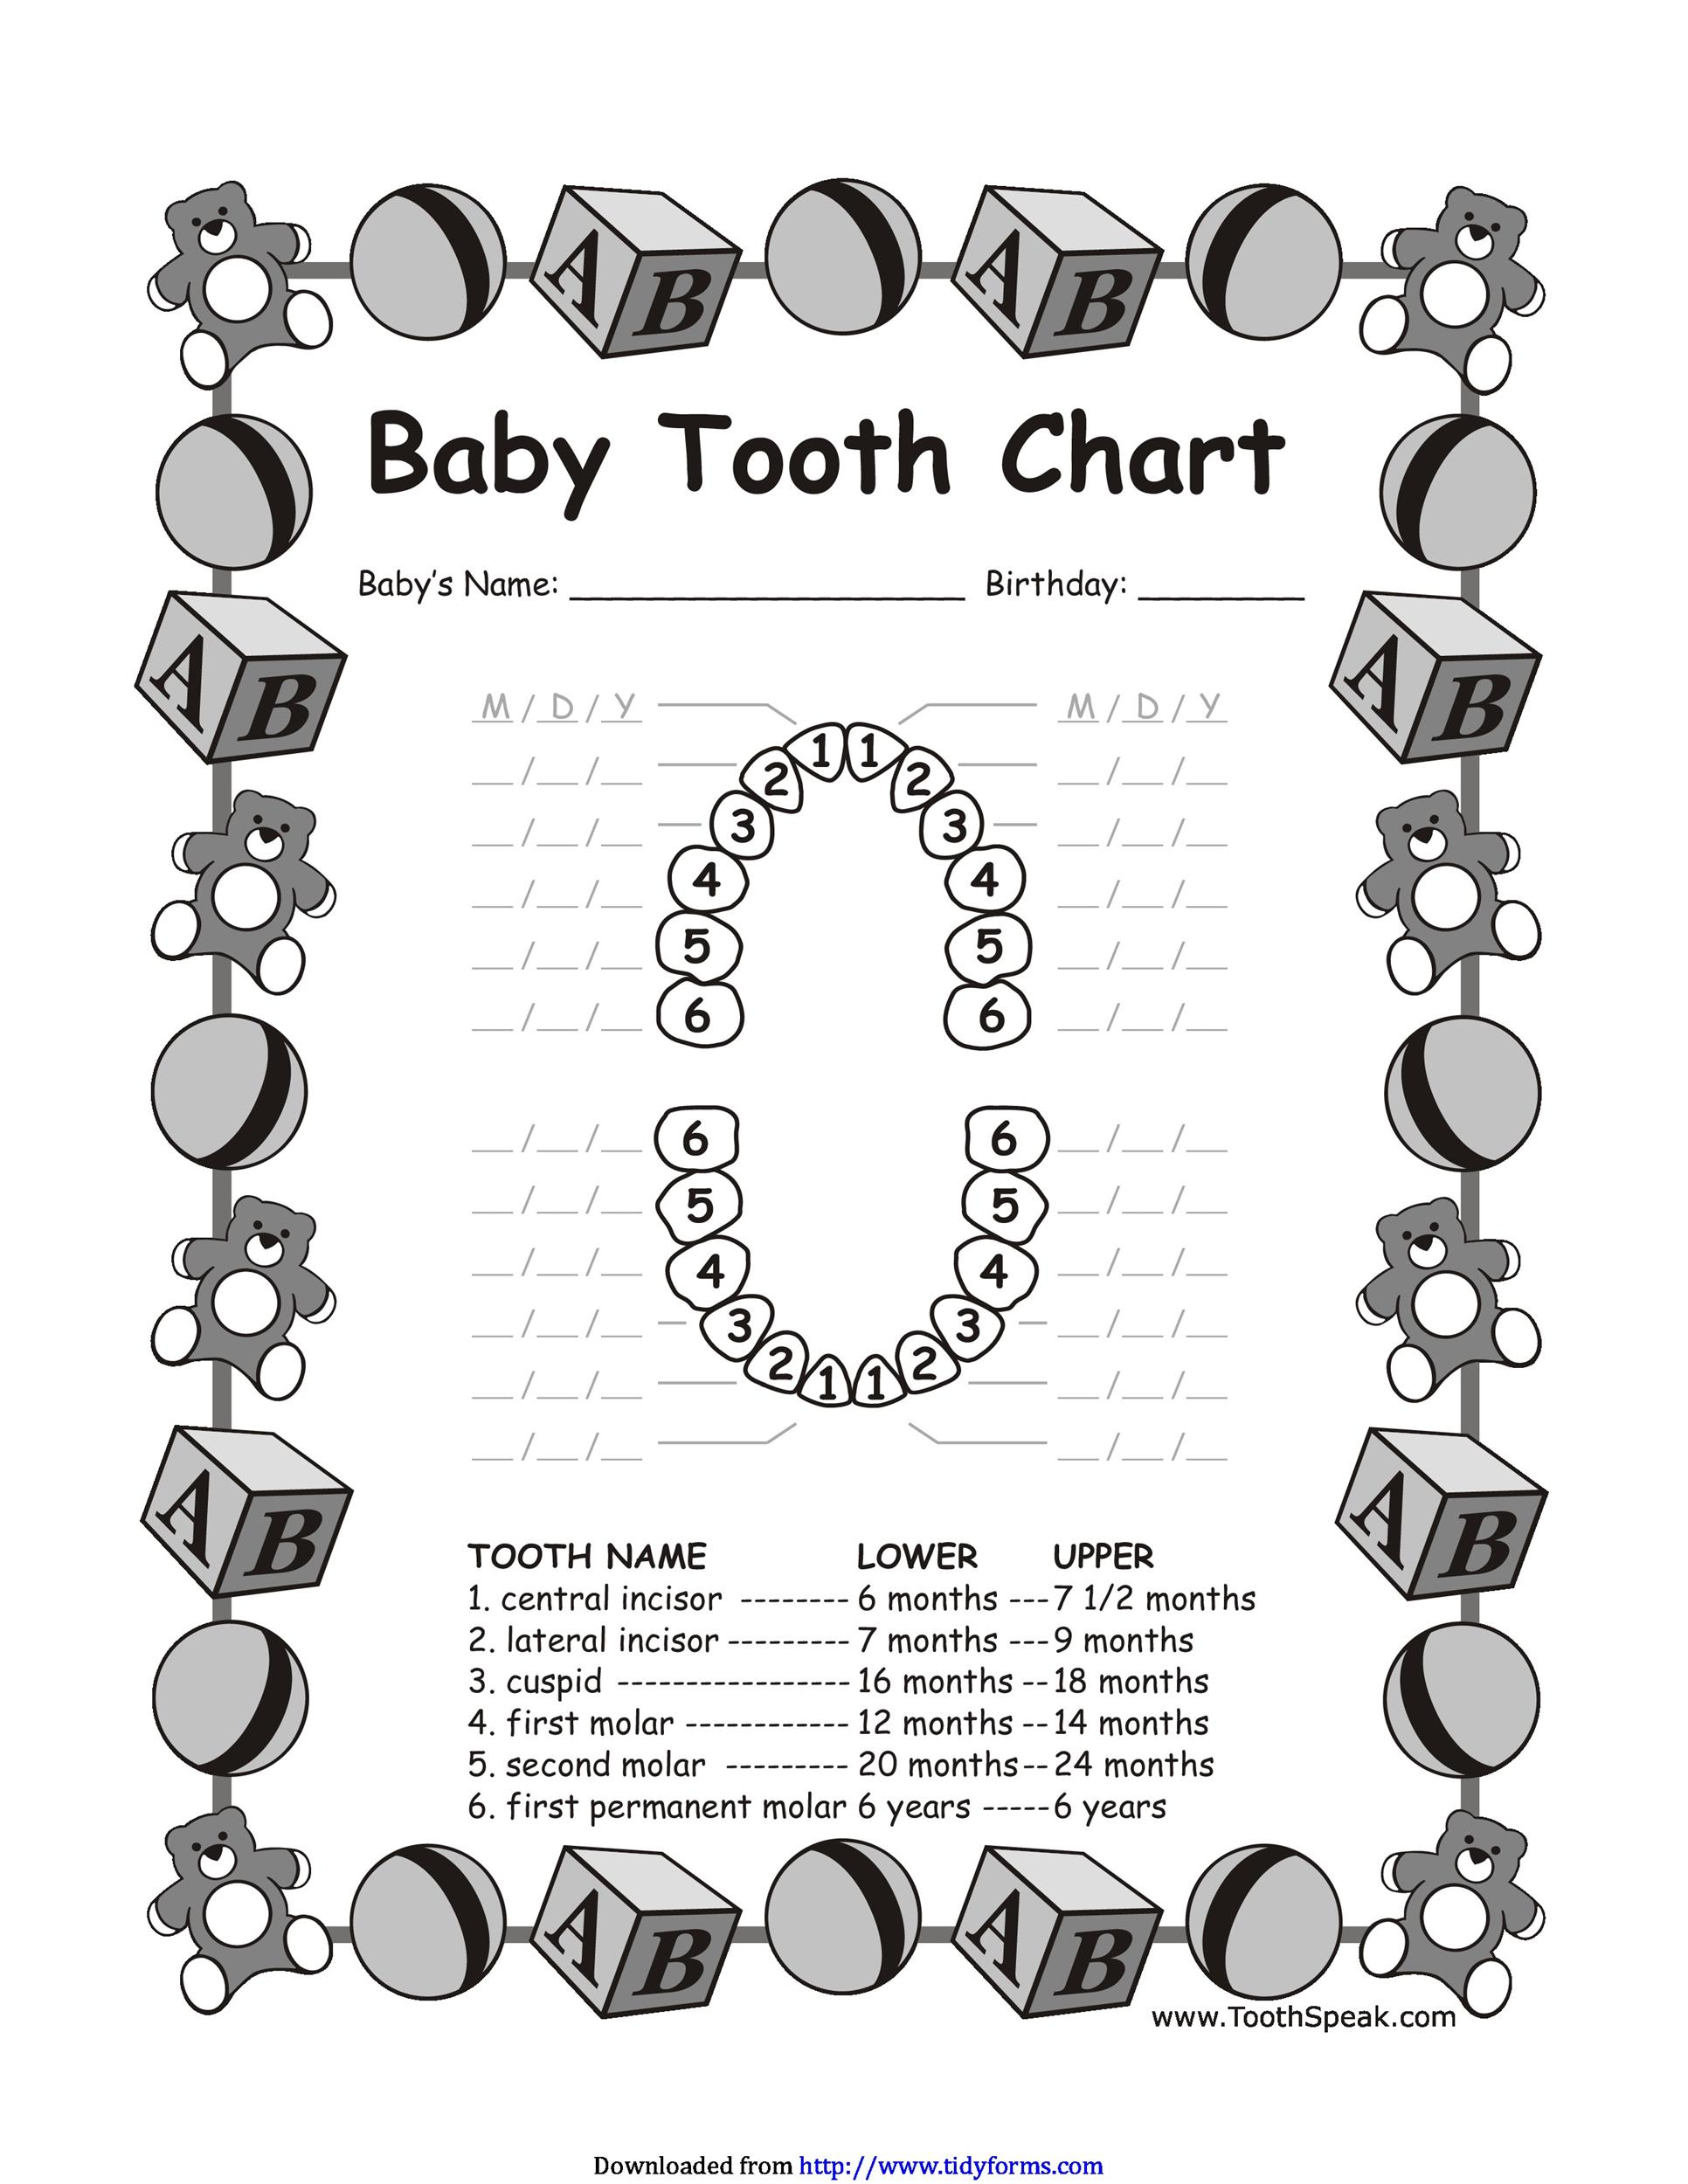 38 Printable Baby Teeth Charts & Timelines - Template Lab